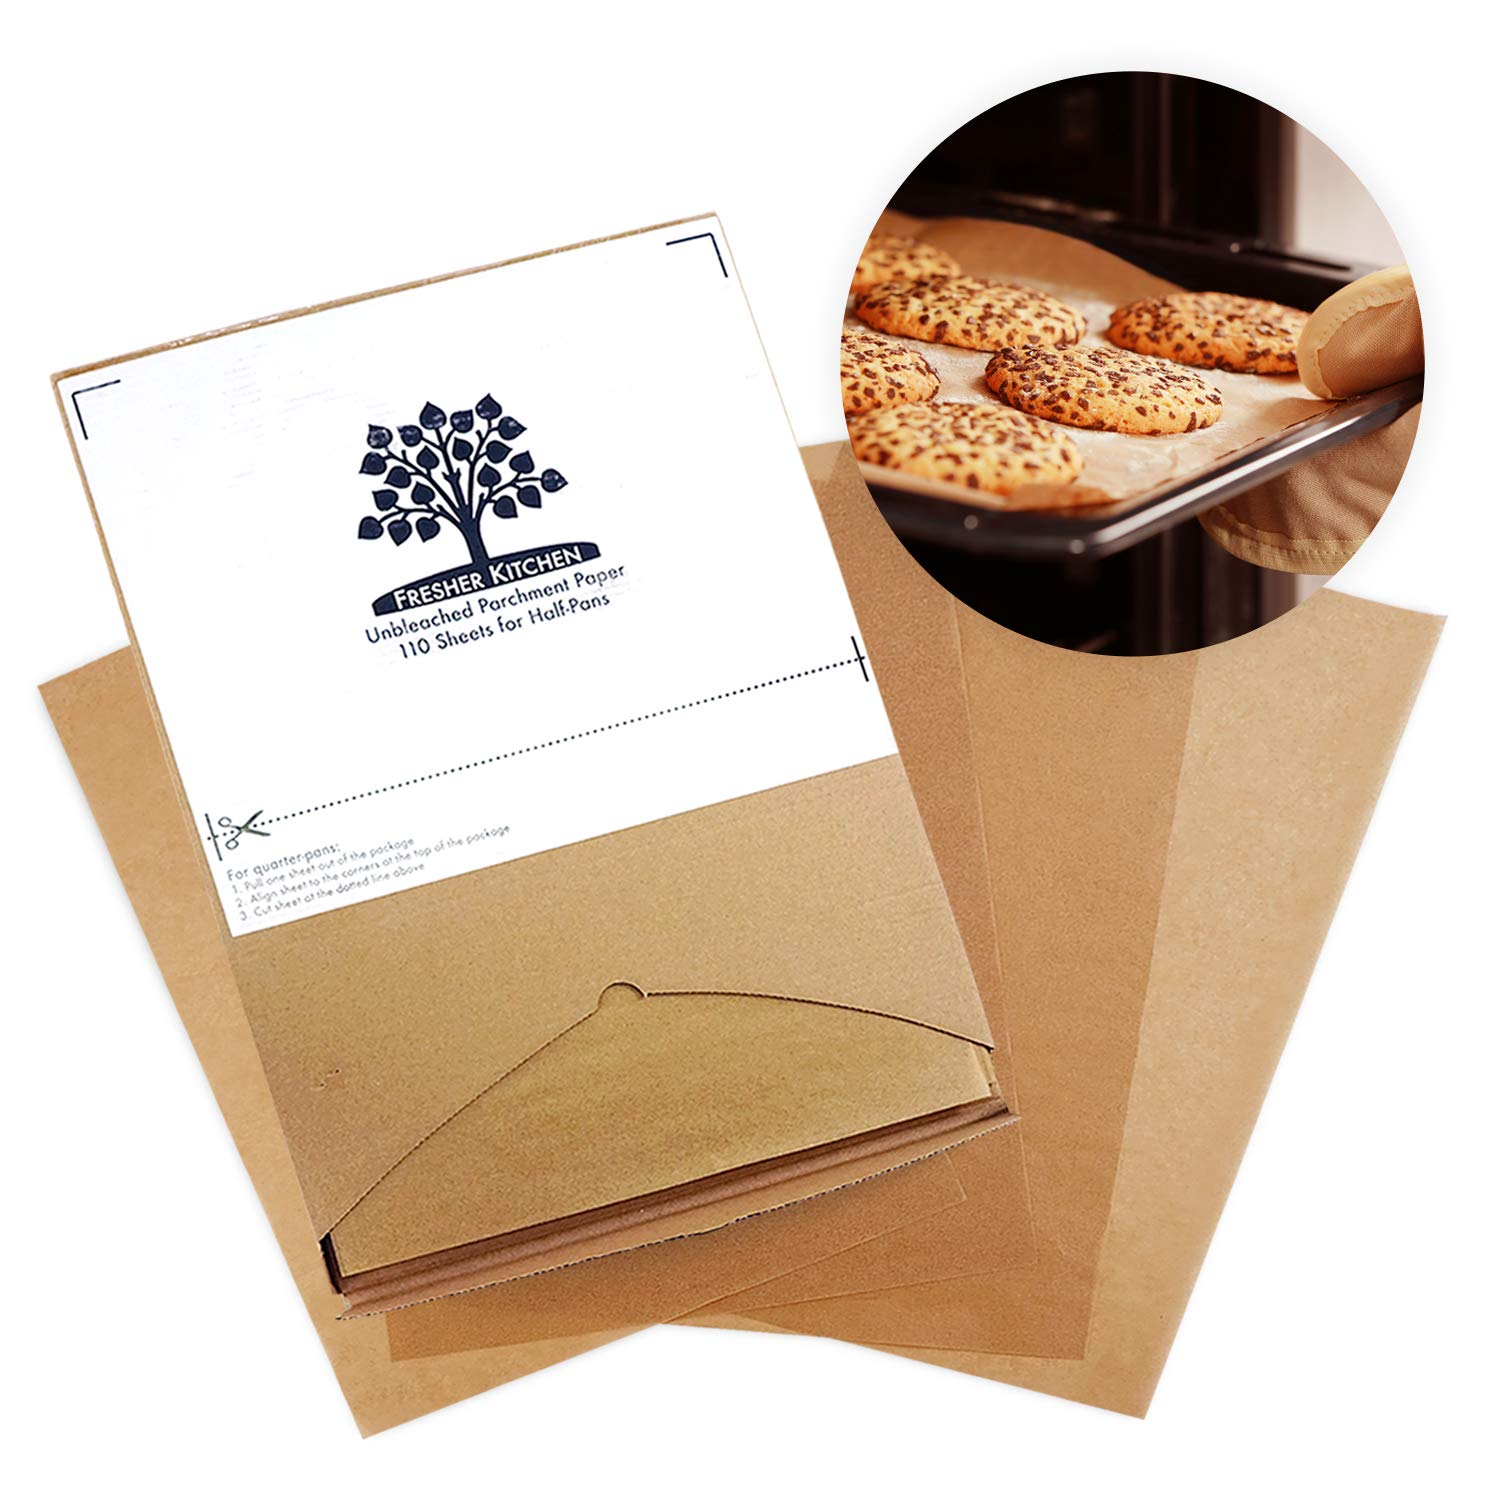 Fresher Kitchen Premium Unbleached Parchment Paper Sheets - 110 Sheets - Exact Fit for 12x16 Half-Sheet Baking Pans Turas Home